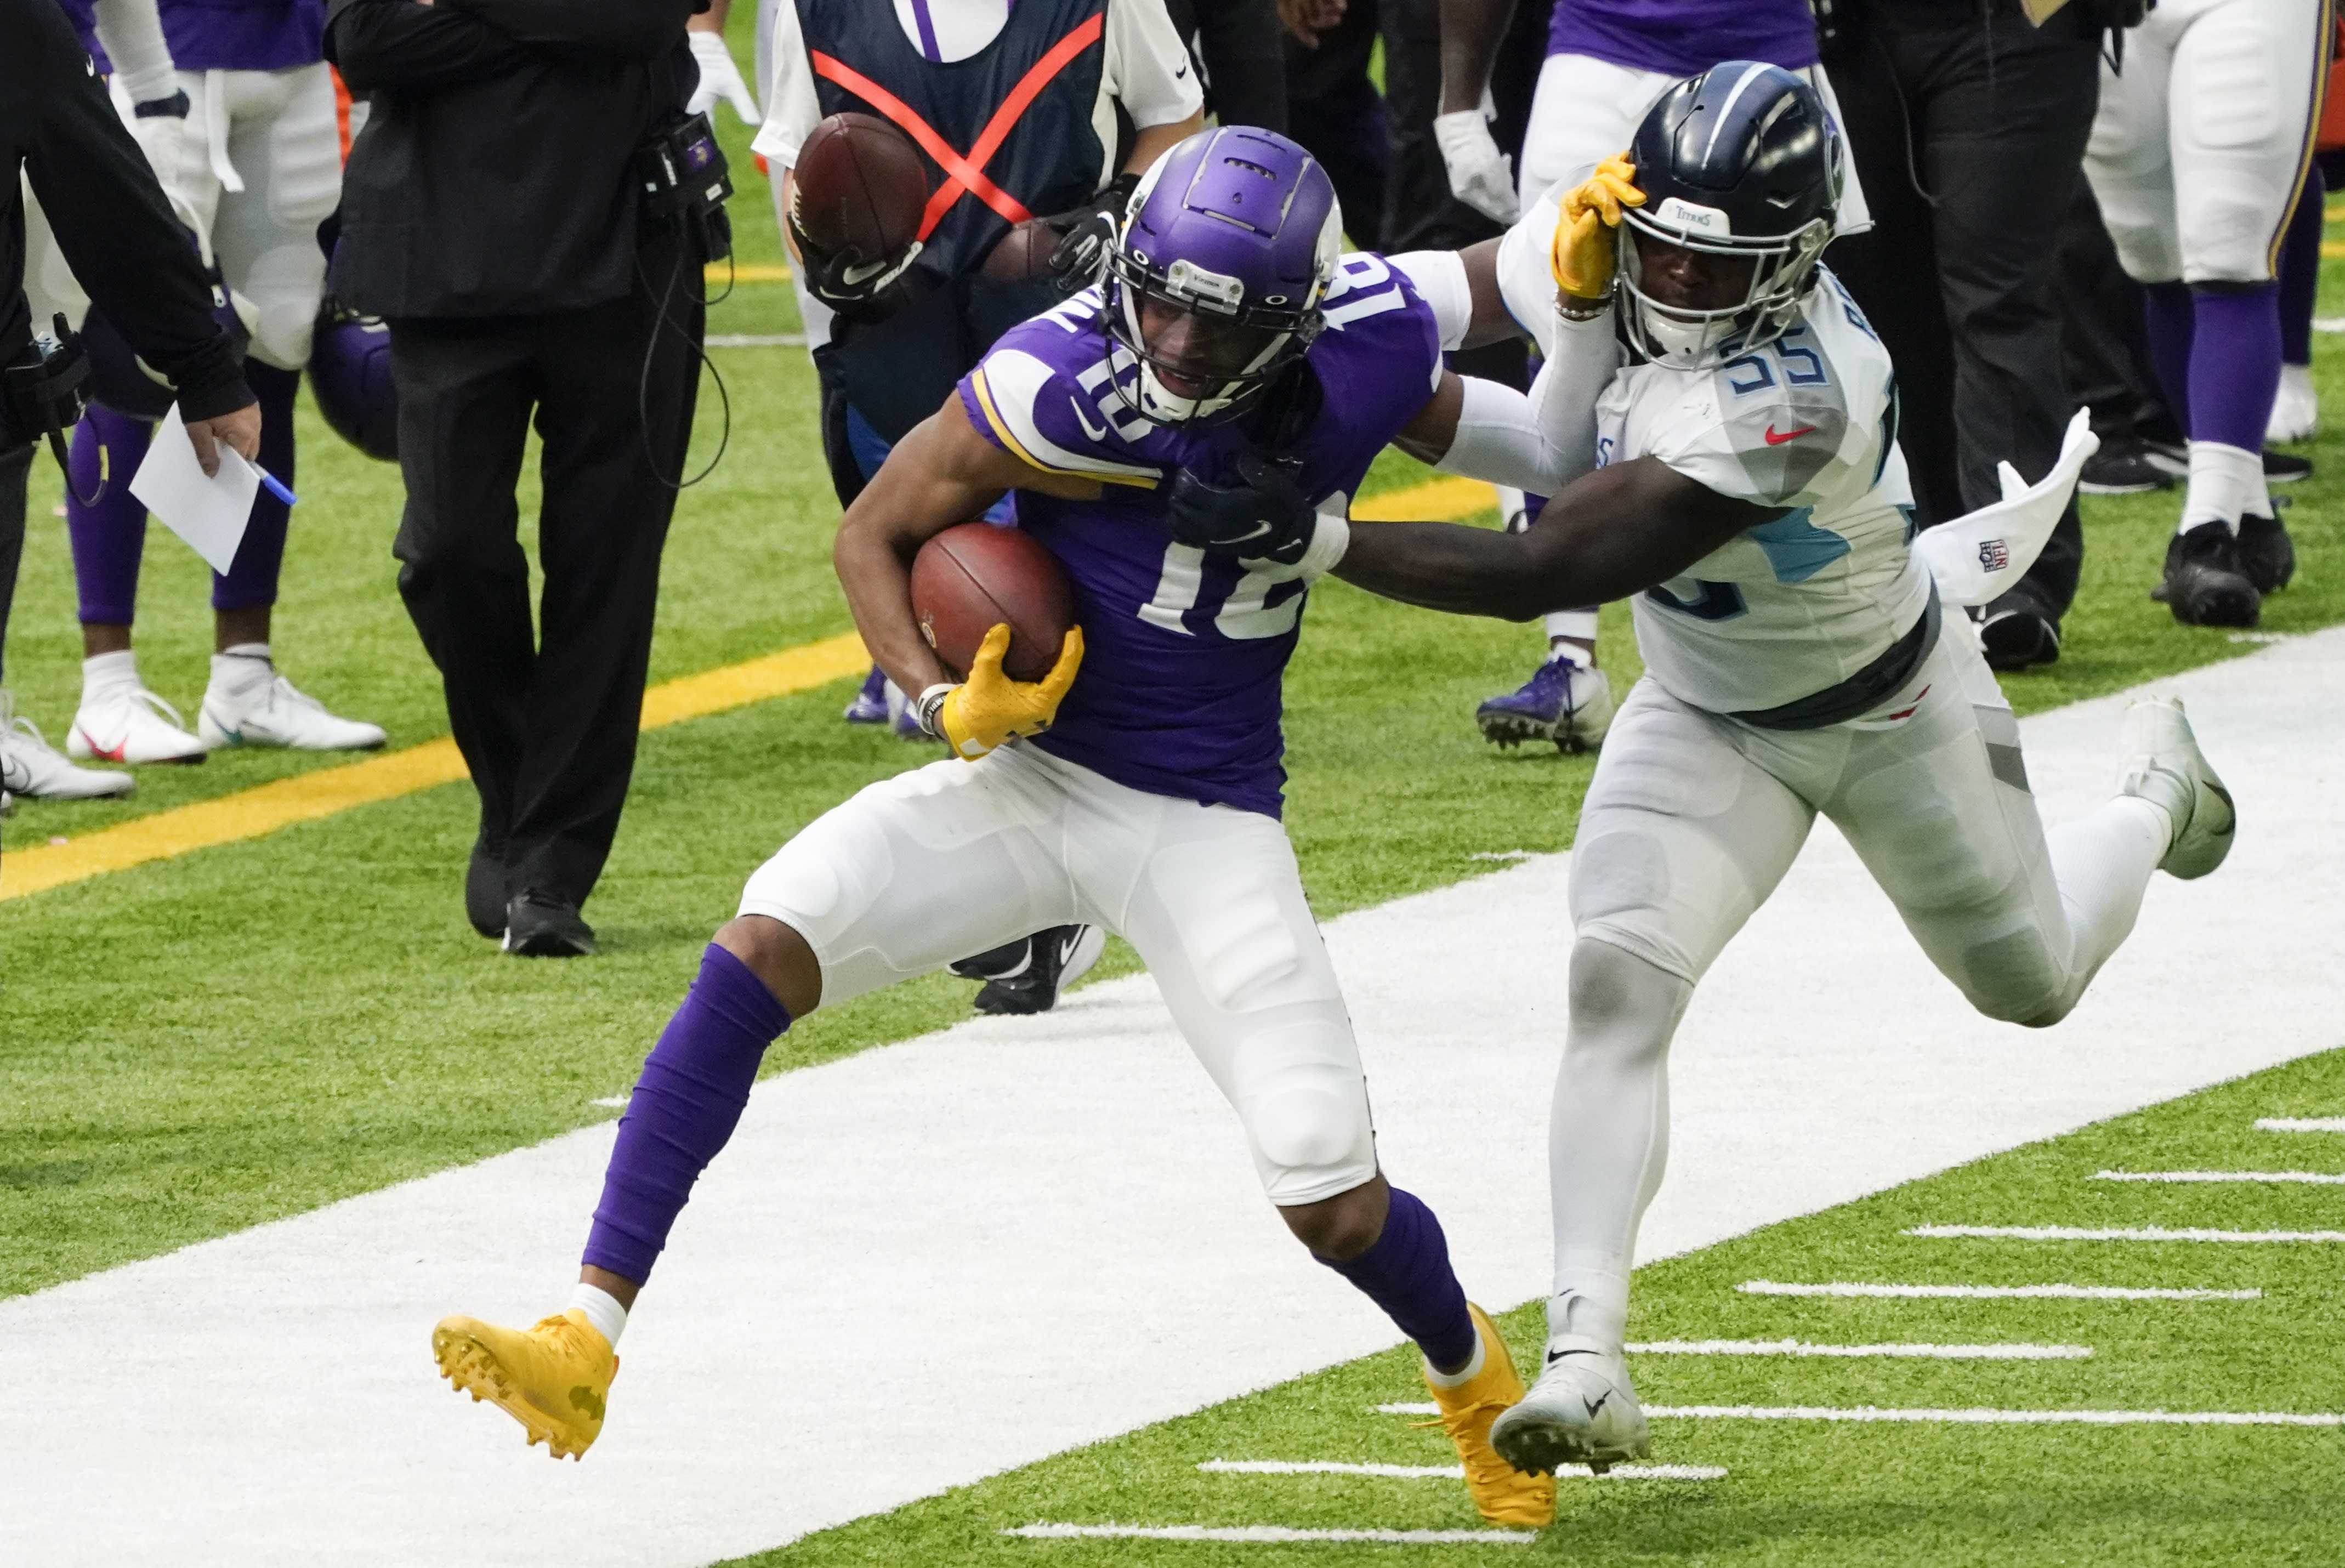 Minnesota Vikings wide receiver Justin Jefferson (18) tries to break a tackle by Tennessee Titans inside linebacker Jayon Brown, right, during the first half of an NFL football game, Sunday, Sept. 27, 2020, in Minneapolis. (AP Photo/Jim Mone)